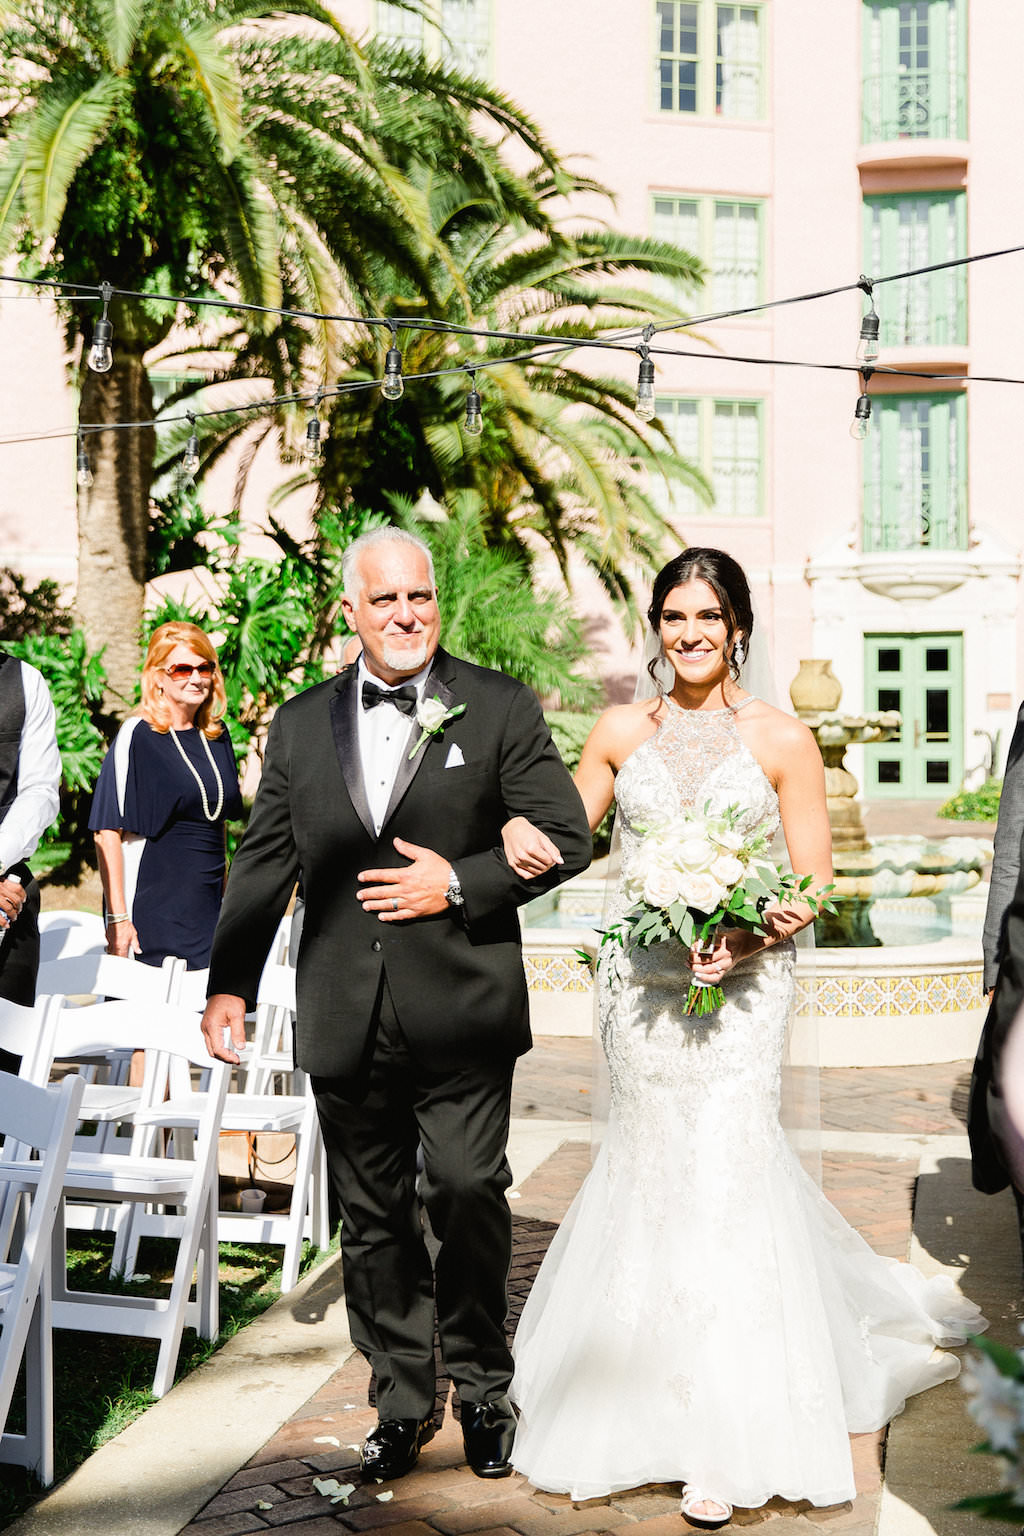 Bride Walking Down the Aisle with Father Ceremony Portrait, with White Rose and Greenery Bouquet, Bride in Fit and Flare Lace Halter Bodice Wedding Dress   Tampa Bay Wedding Photographer Ailyn La Torre   Venue The Vinoy Renaissance St. Petersburg Resort & Golf Club   Tampa Hair Artist Femme Akoi